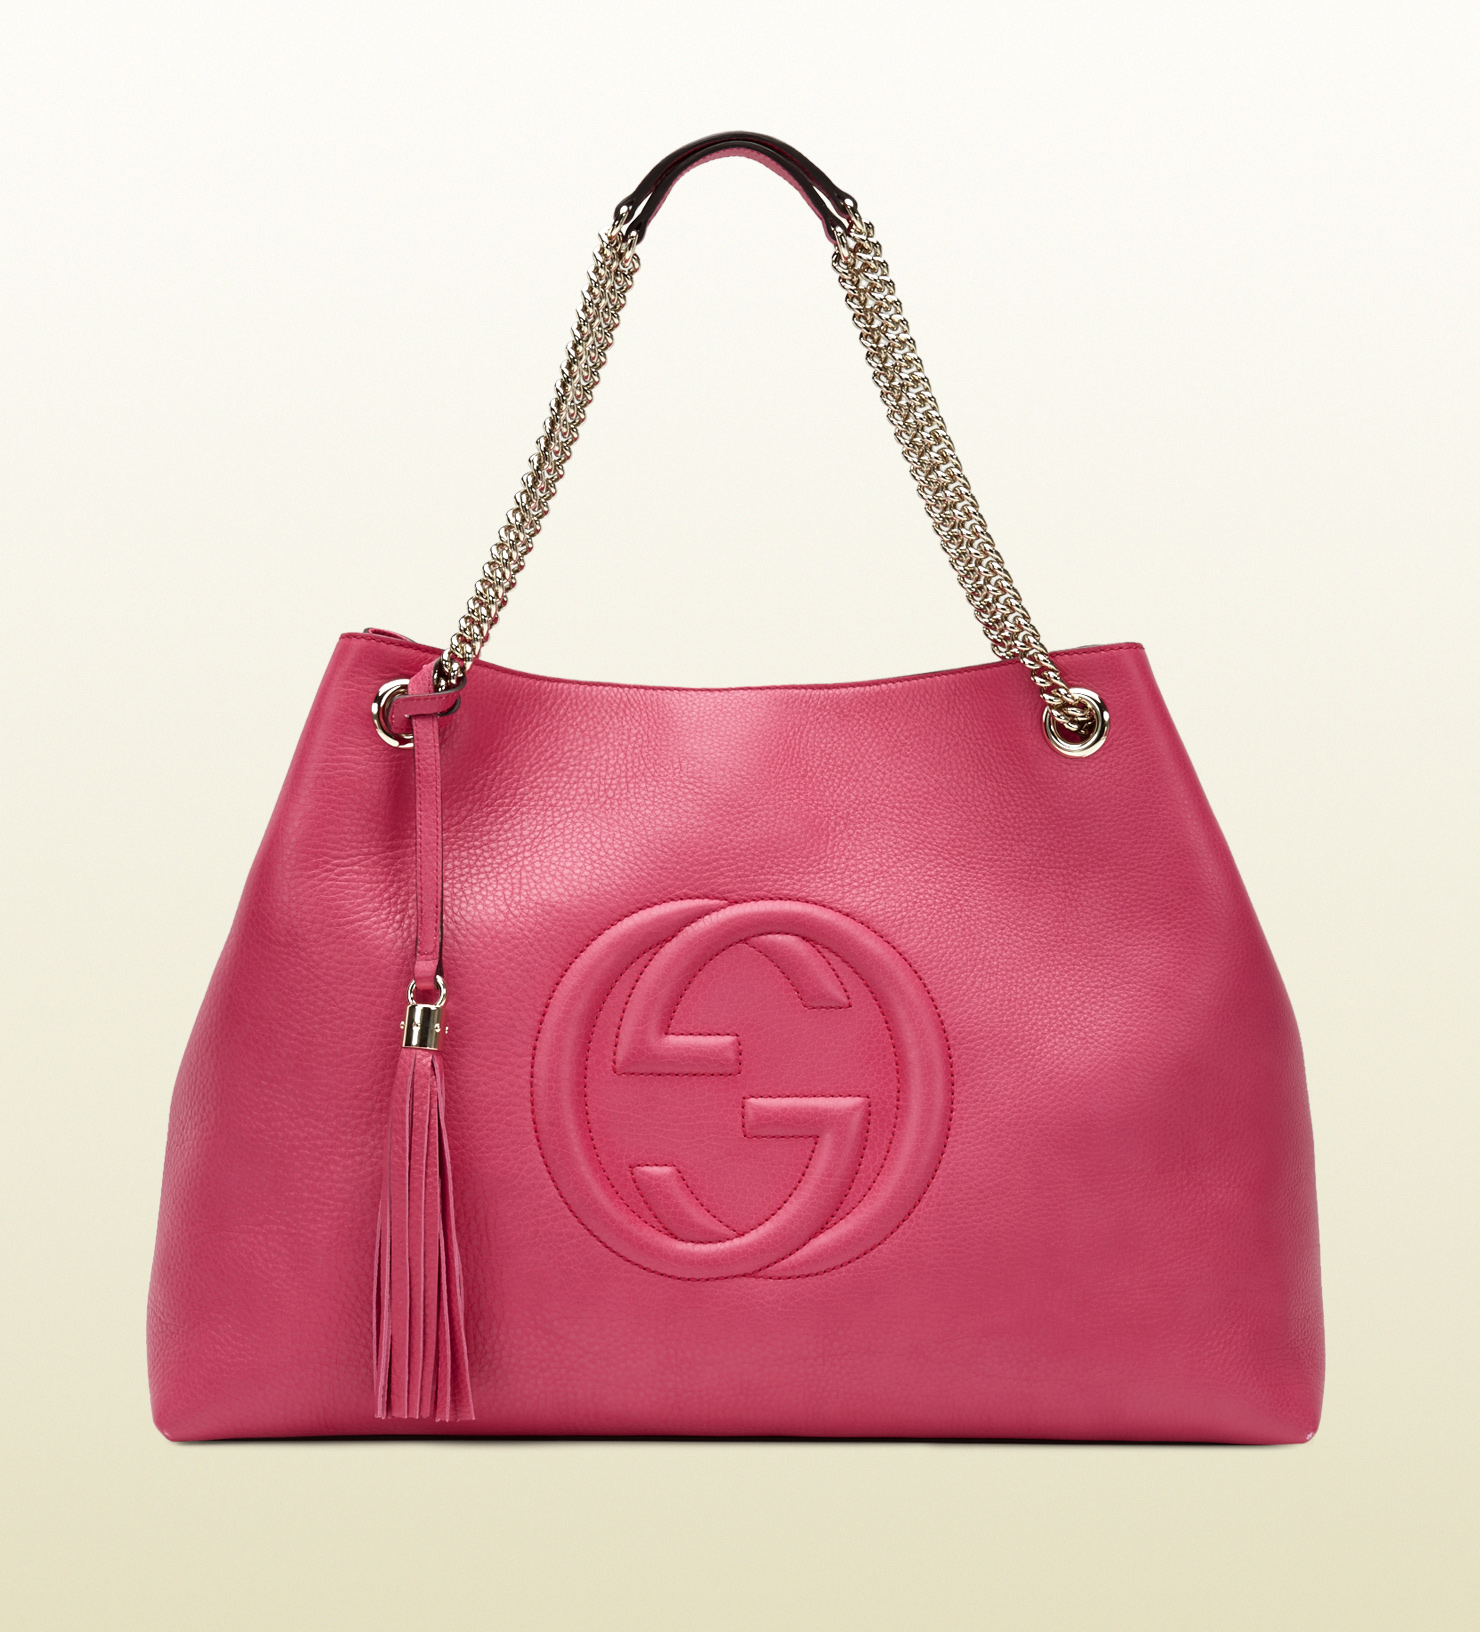 ab86a86d3f01 Gucci Pink Leather Shoulder Bag | Stanford Center for Opportunity ...